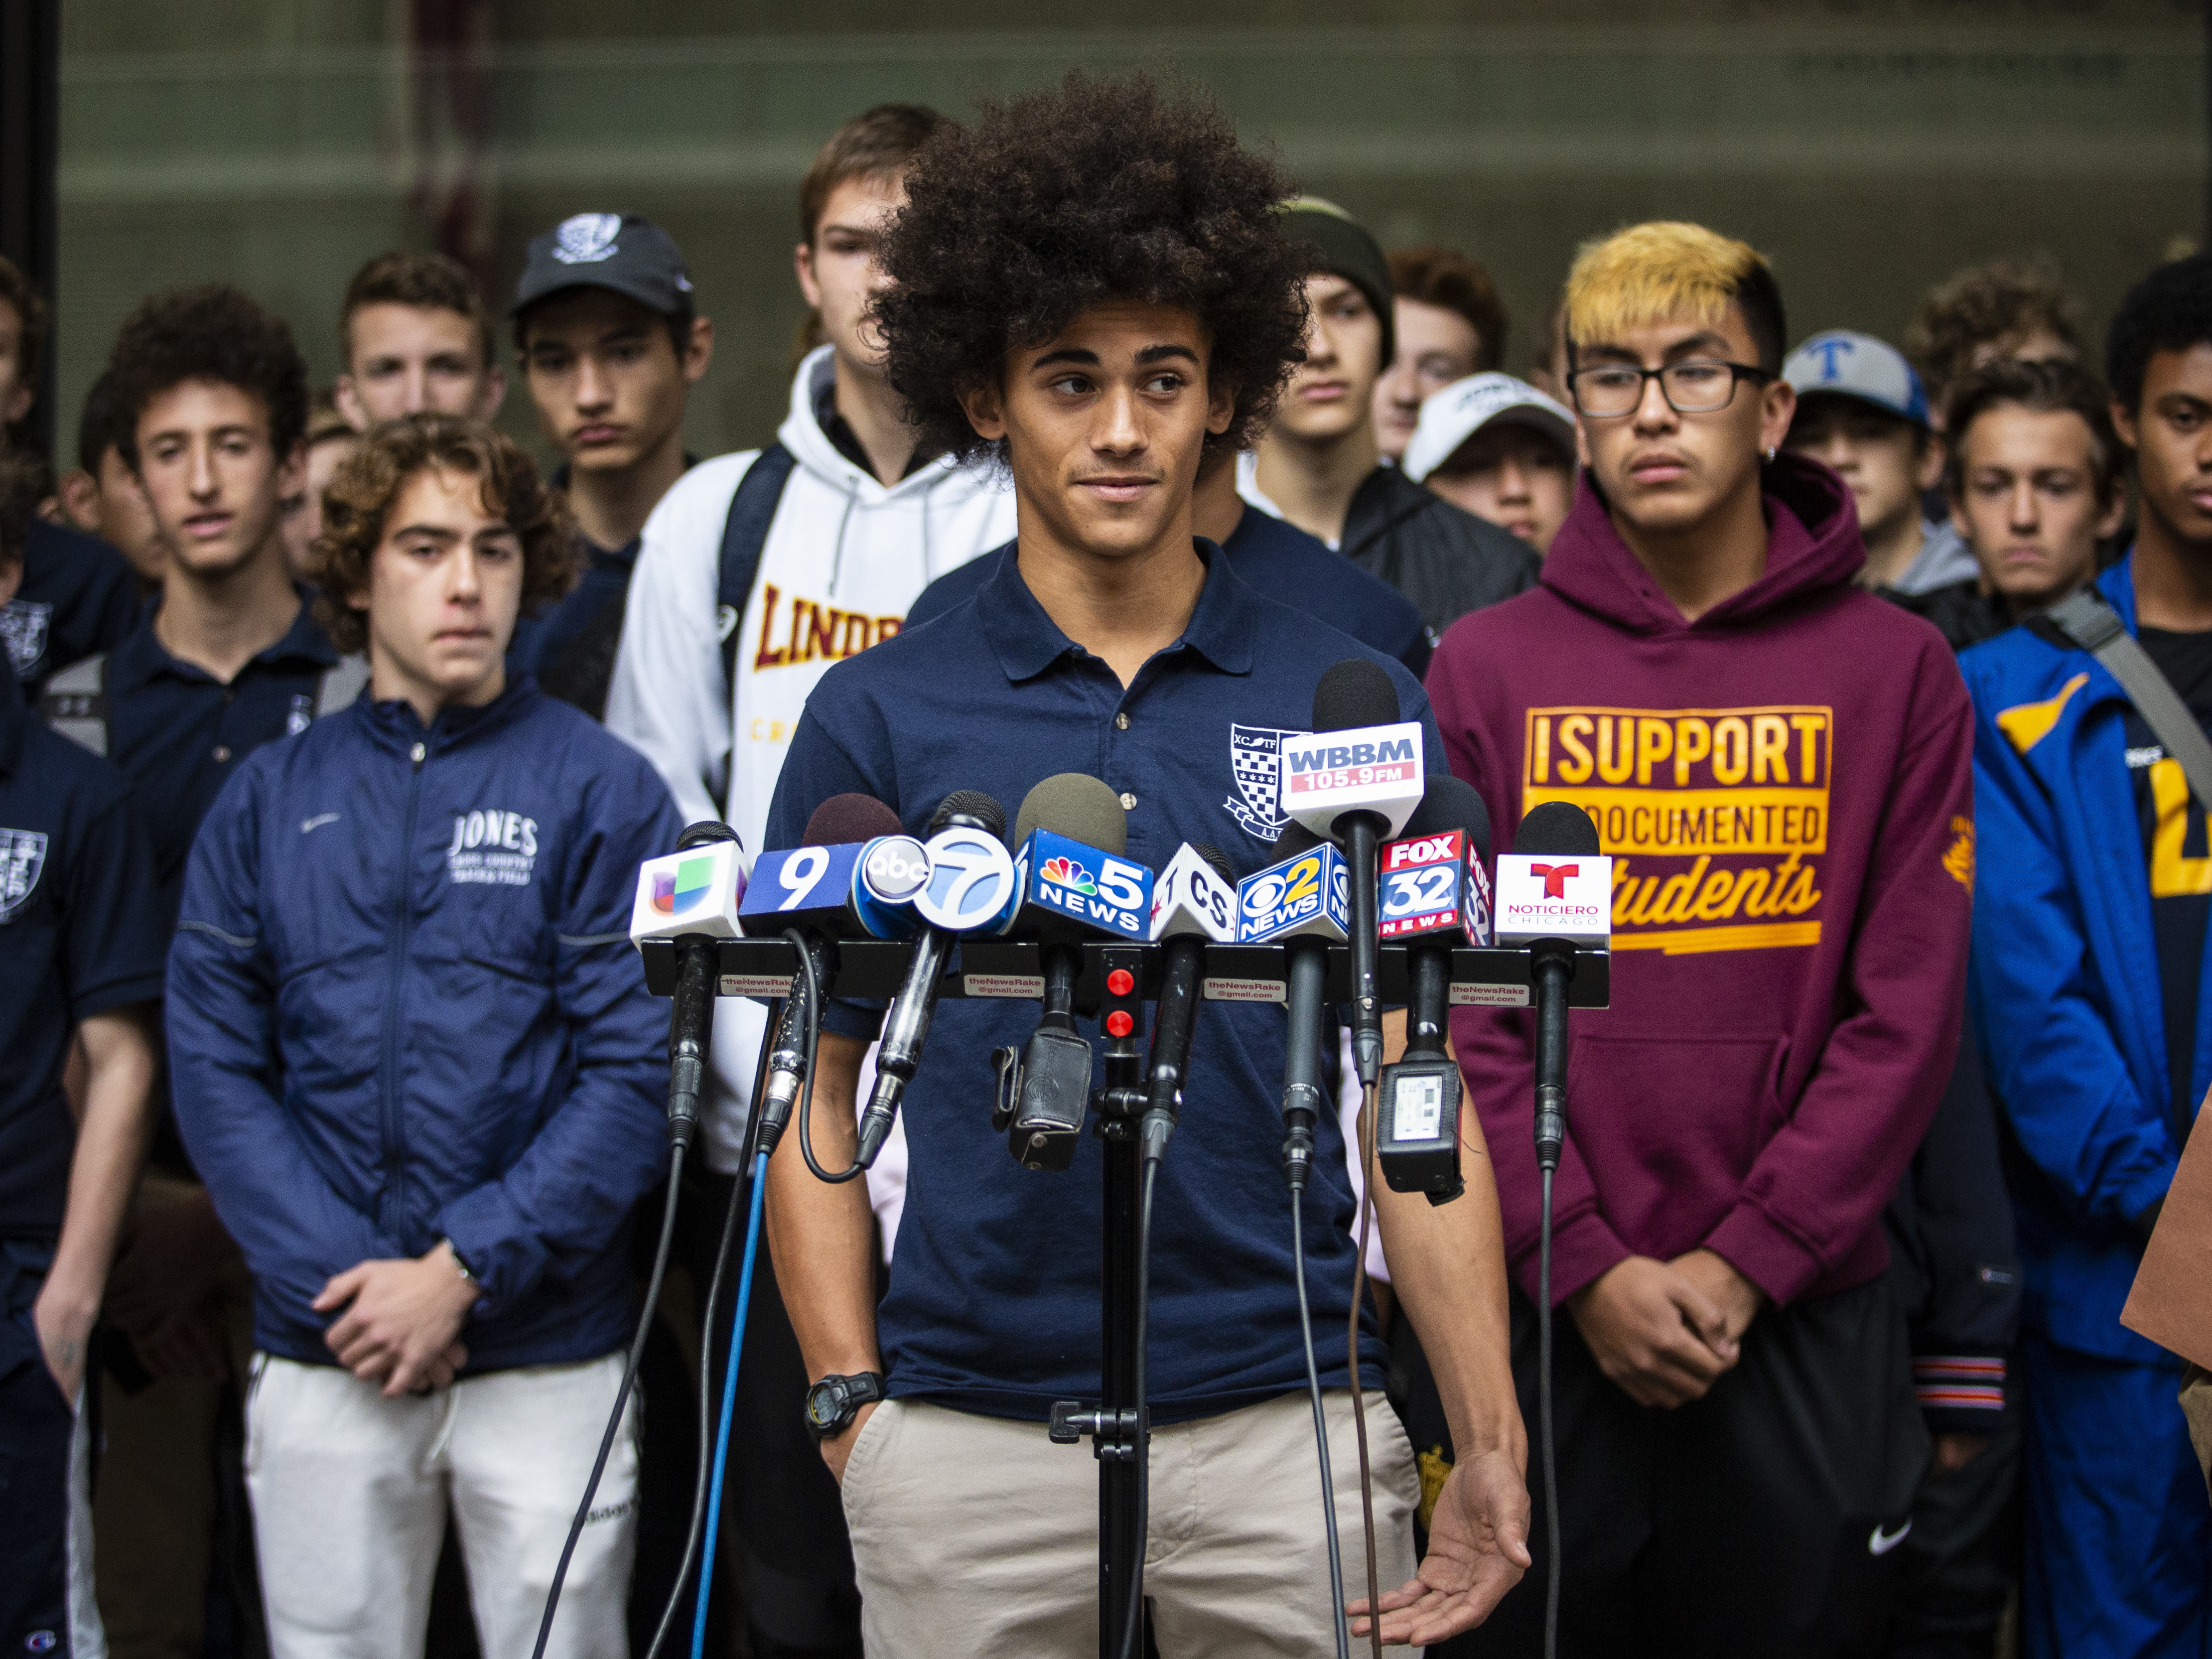 Ian Bacon, a senior at Jones College Preparatory High School who runs cross country, speaks during a press conference outside the Daley Center.